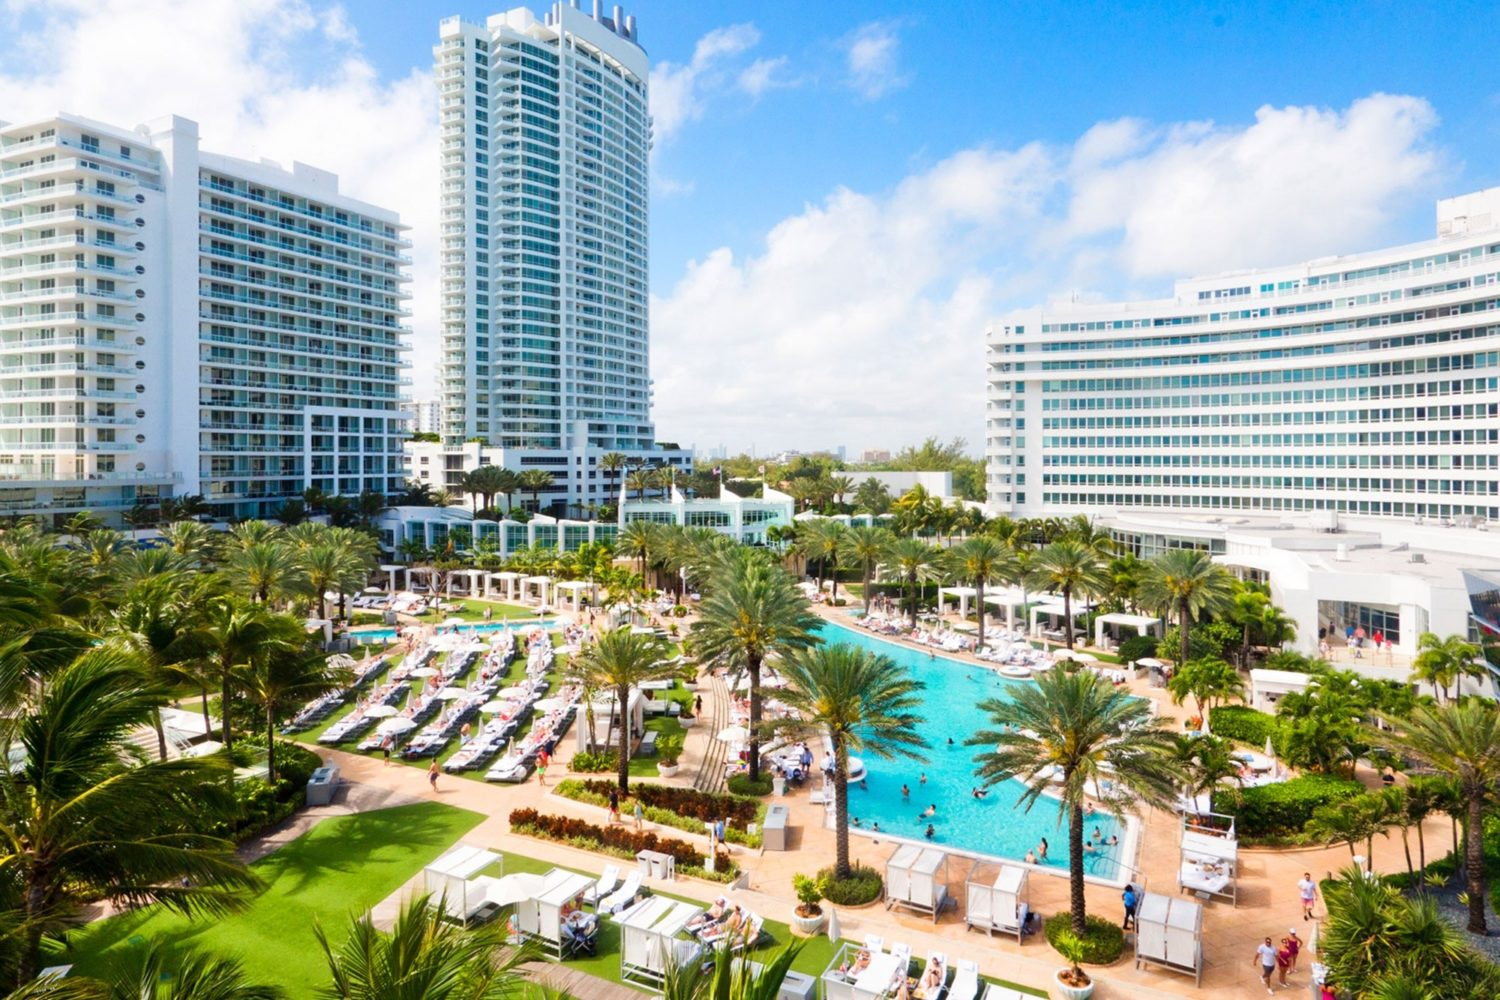 Fontainebleau Hotel / Bild: Copyright Greater Miami CVB